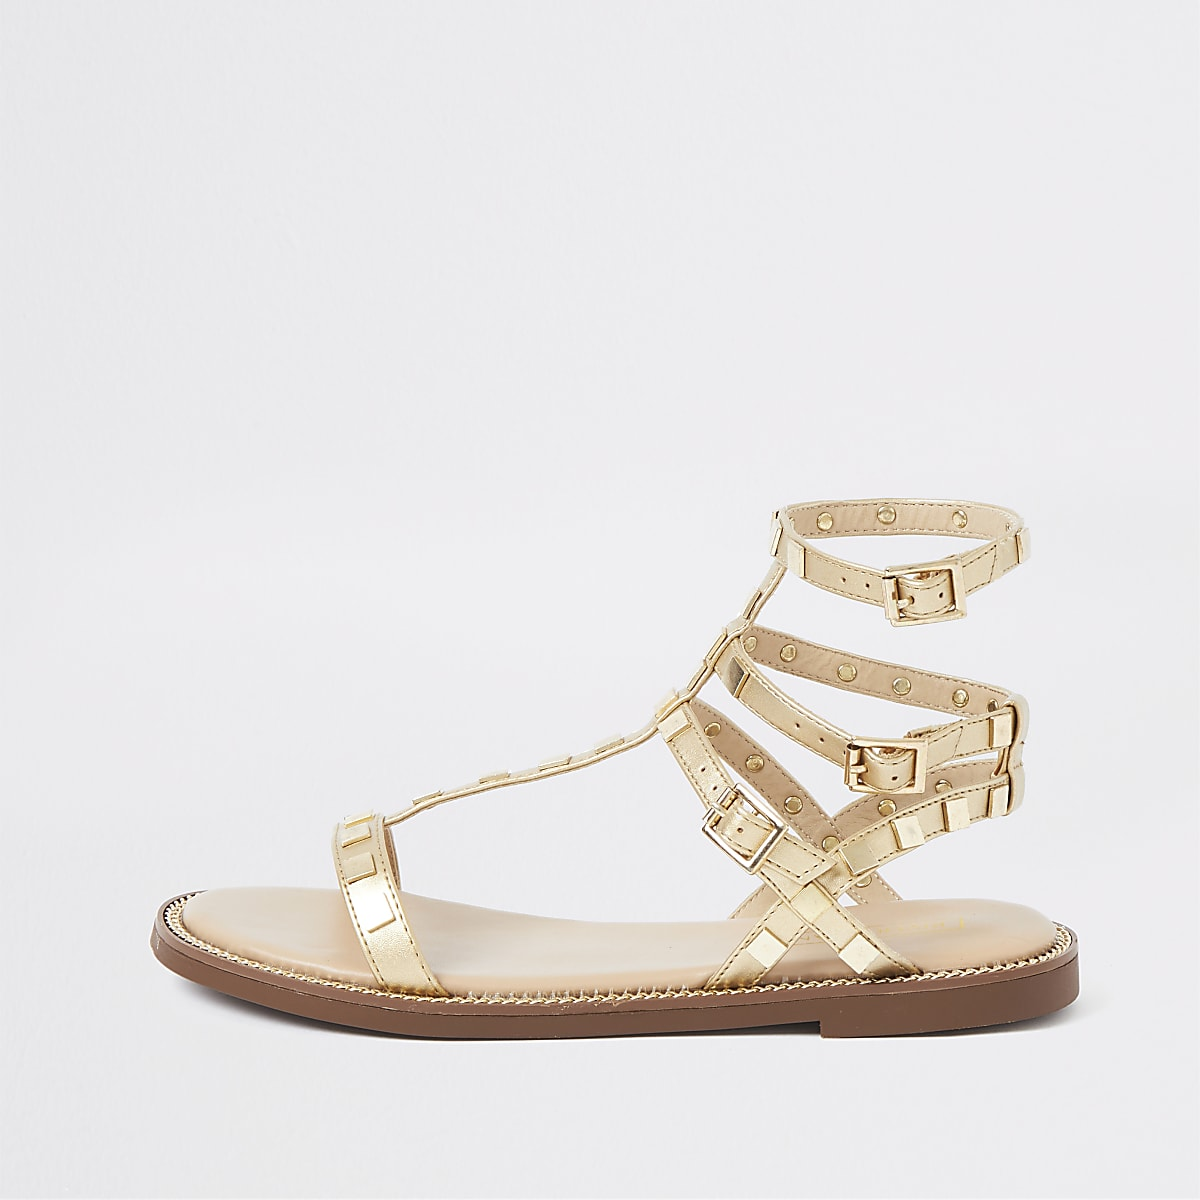 847fecb4e865 Gold studded gladiator sandals - Sandals - Shoes   Boots - women